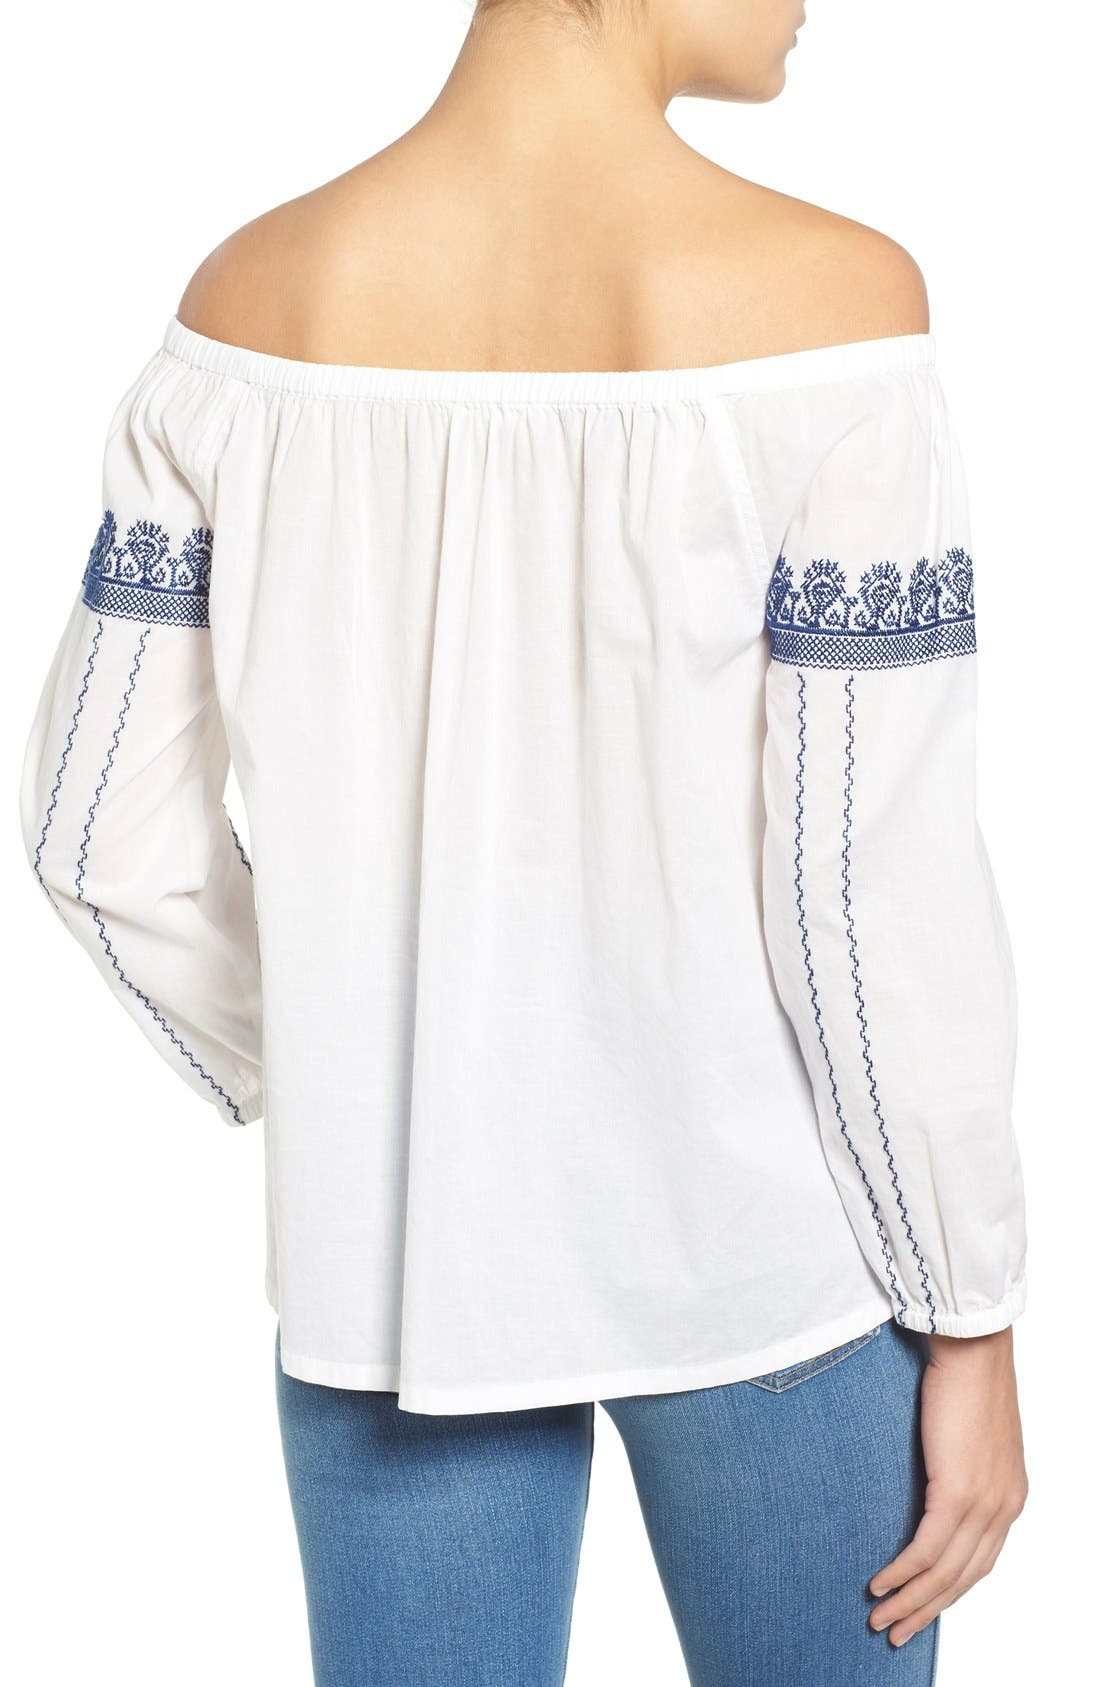 Alternate Image 2  - Madewell 'Folktale' Off the Shoulder Top